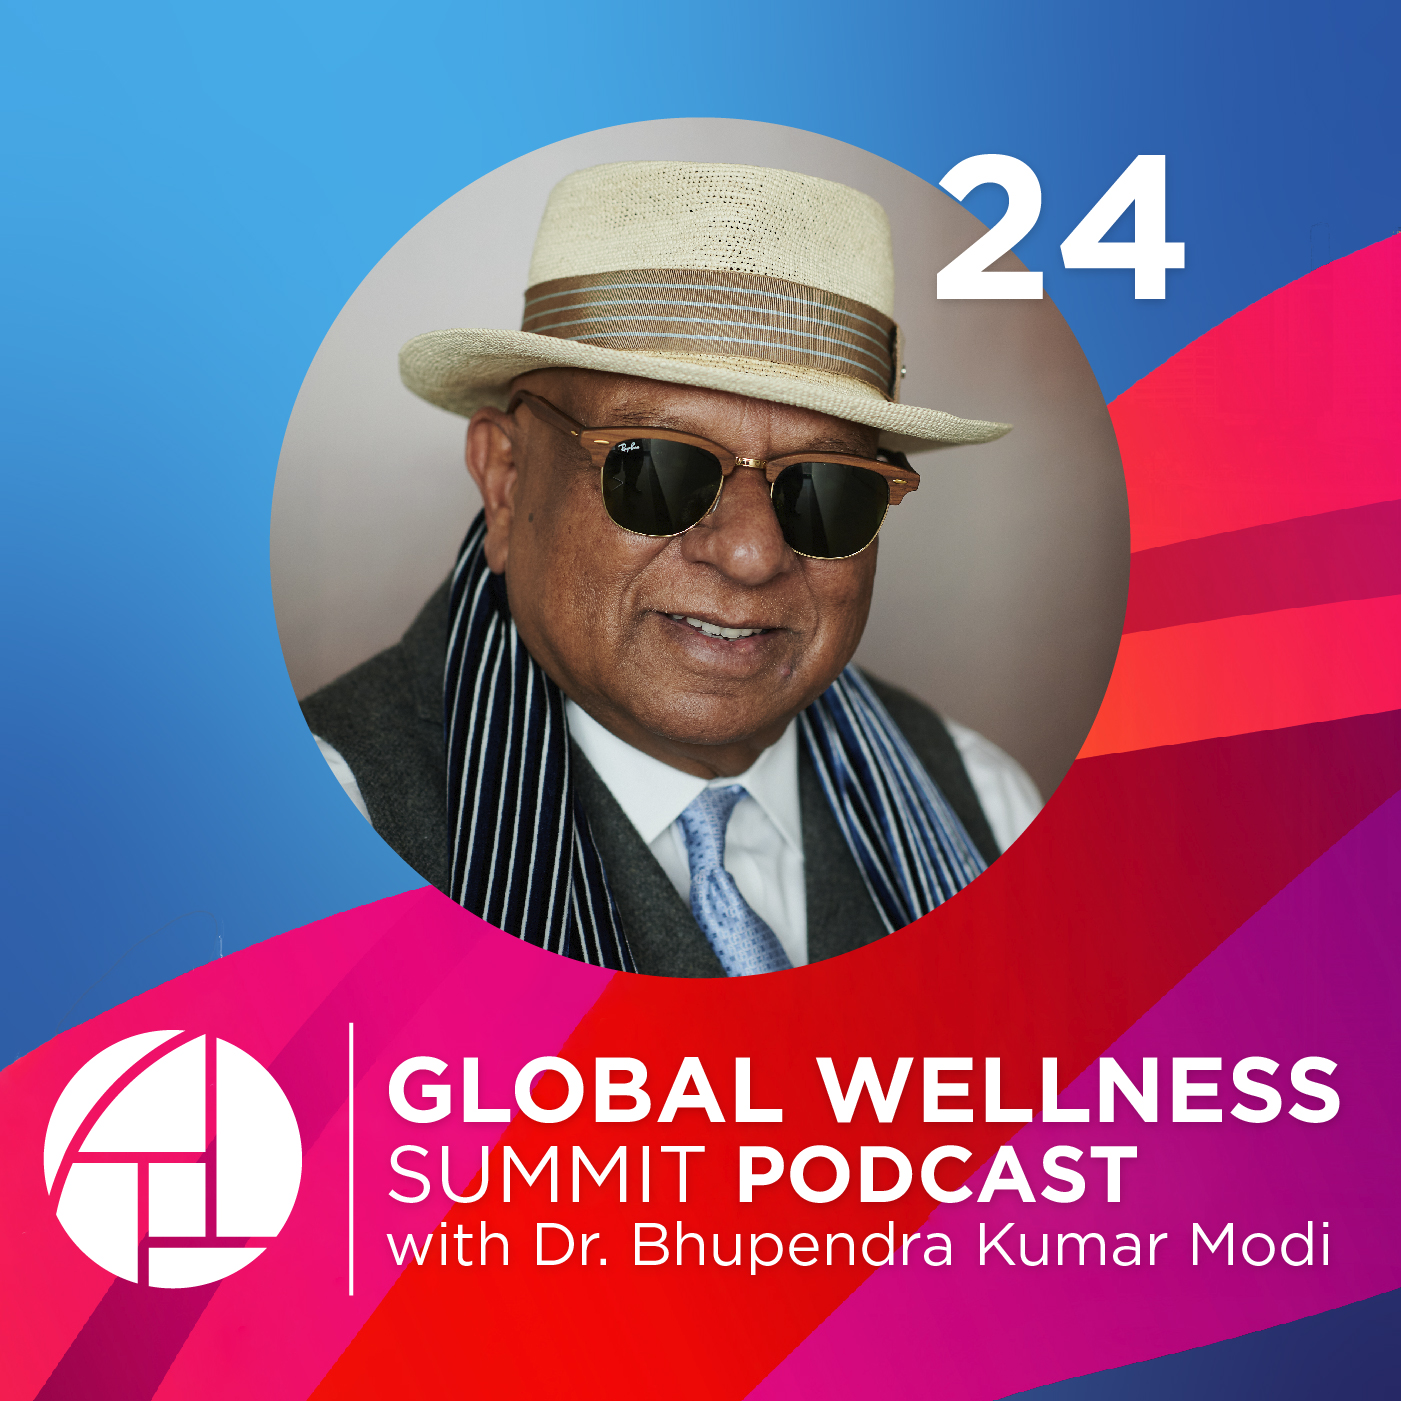 24. Creating a Happy, Healthy, & Wealthy Future Where Everyone Can Live Beyond 100 - with Dr. Bhupendra Kumar Modi from Smart Group